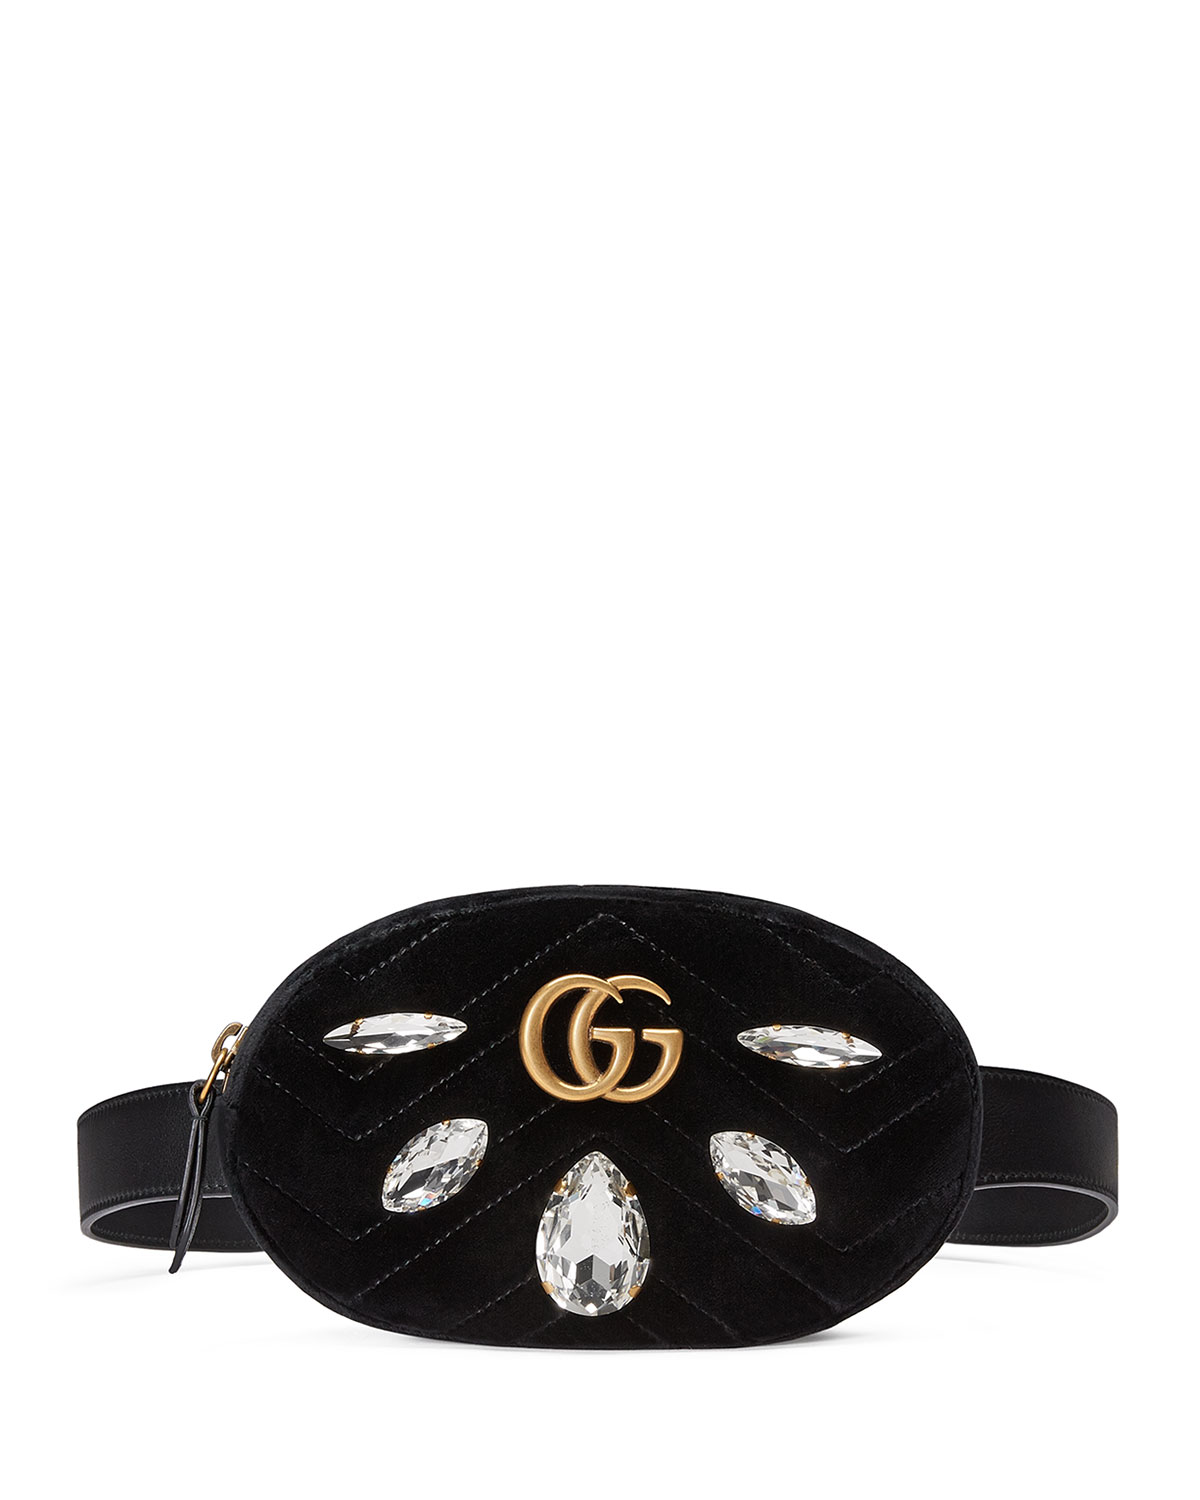 0676c09ae2cfa Gucci GG Marmont Small Quilted Velvet Belt Bag